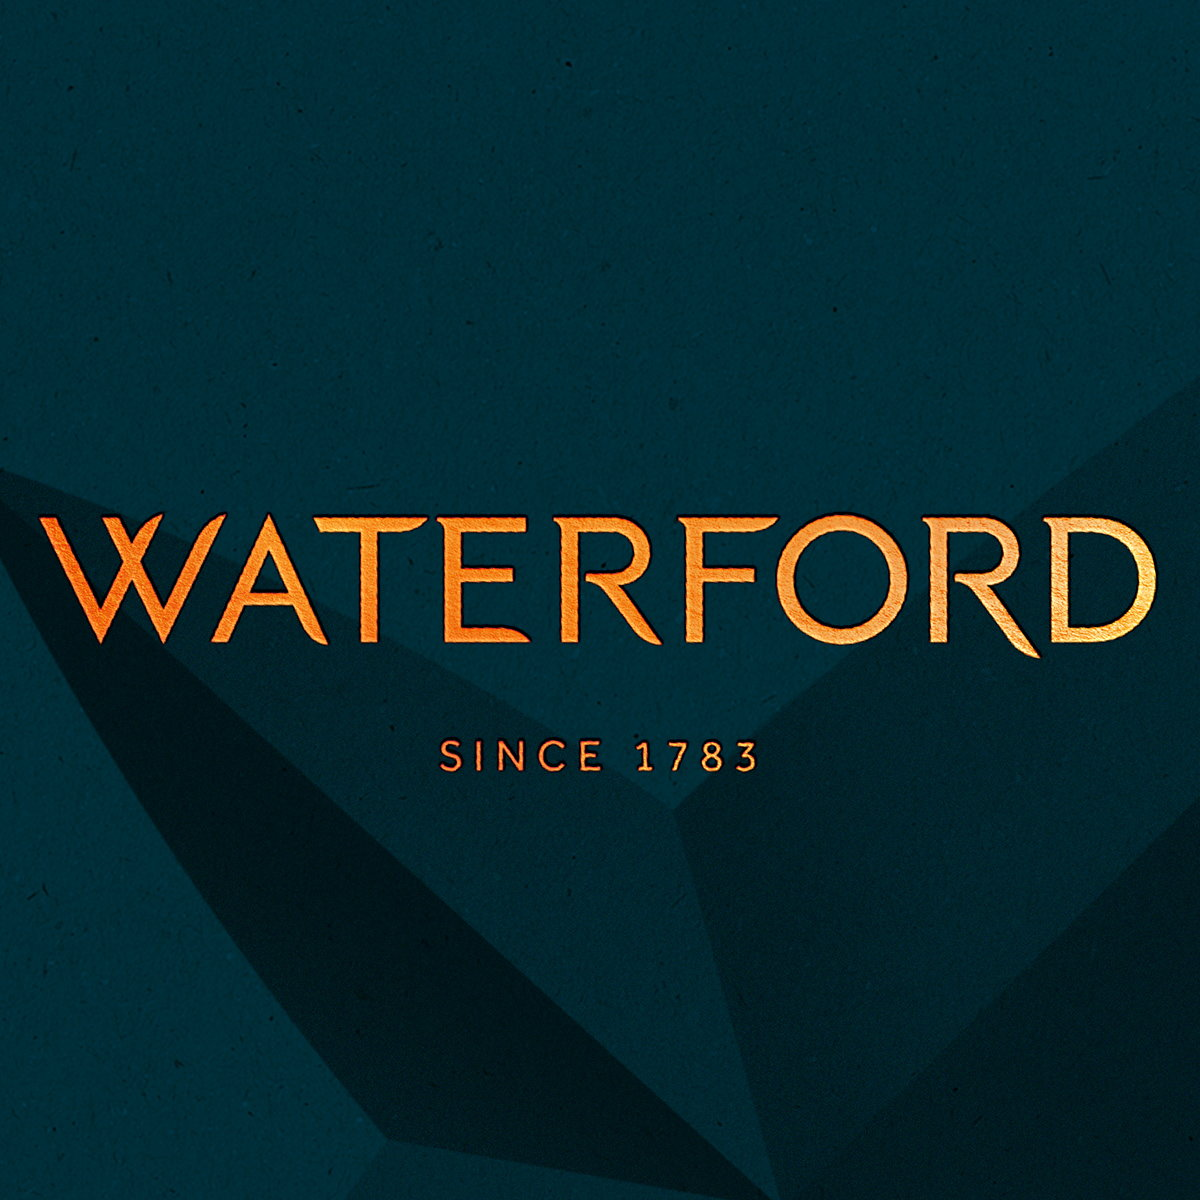 Identica Creates New Identity for Waterford